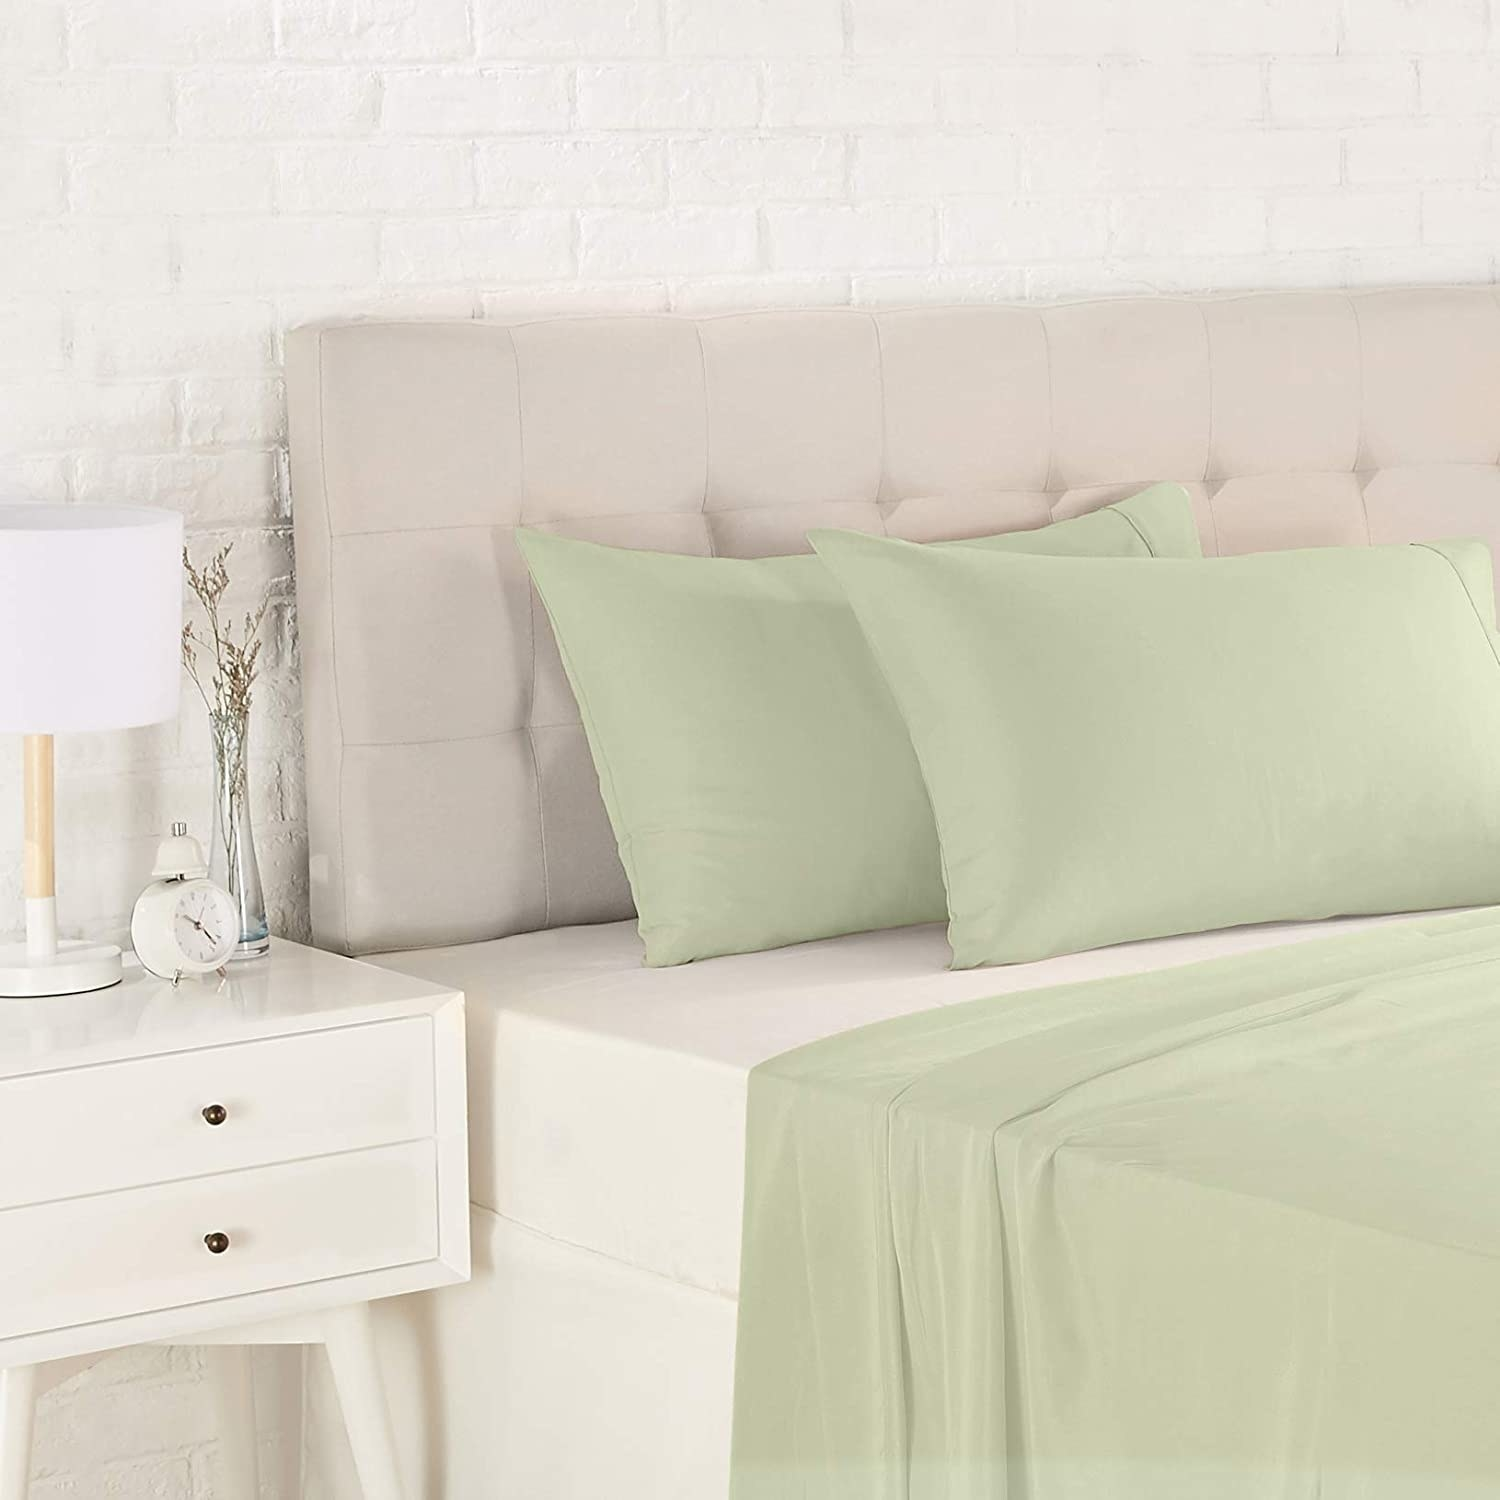 The pillowcases in light sage green